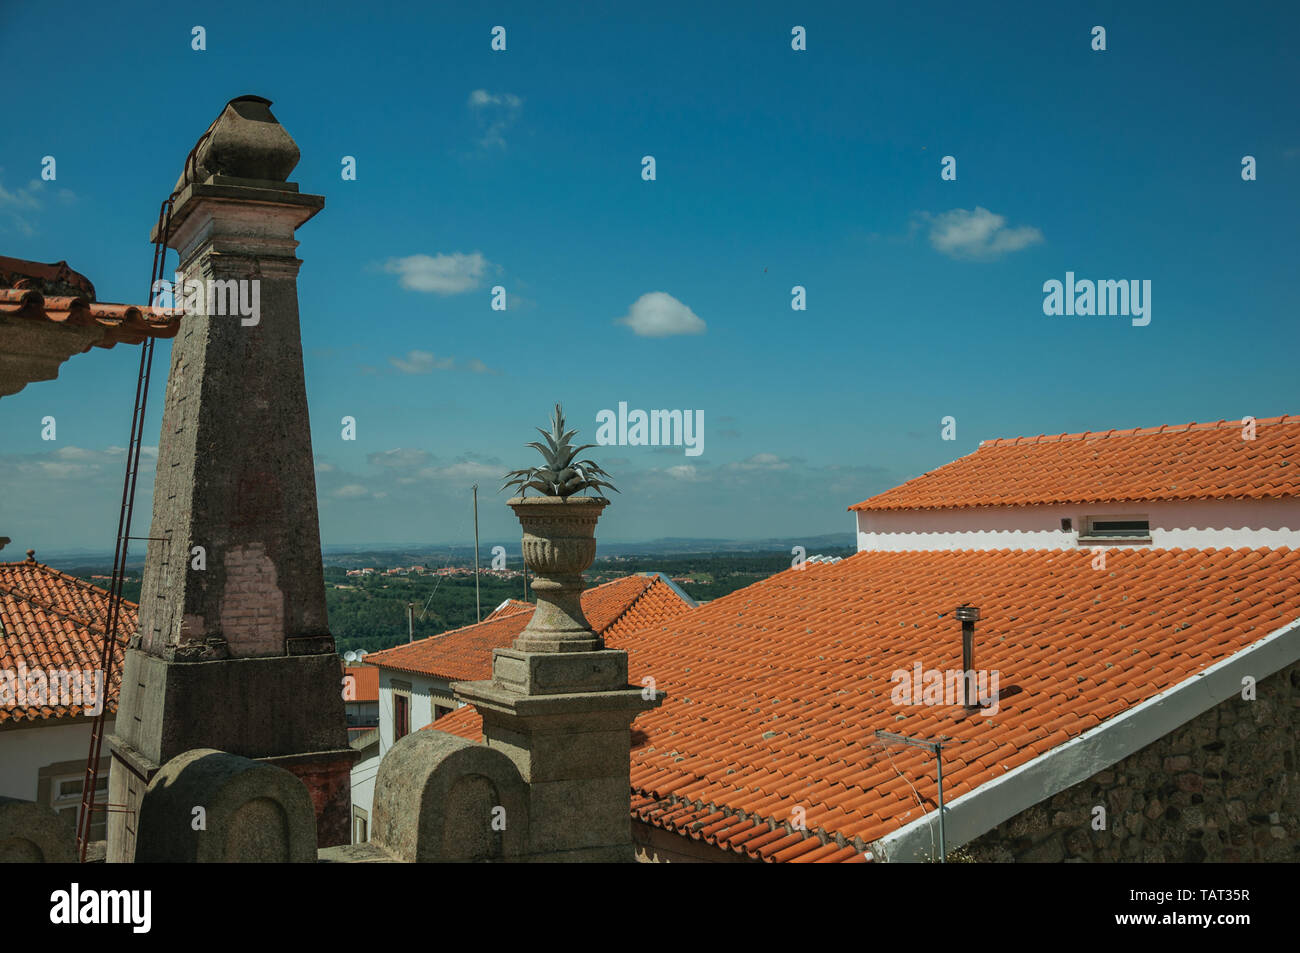 Roofs of houses and chimney with countryside landscape in a sunny day at Seia. A nice village of Portugal also known for its delicious cheese. - Stock Image